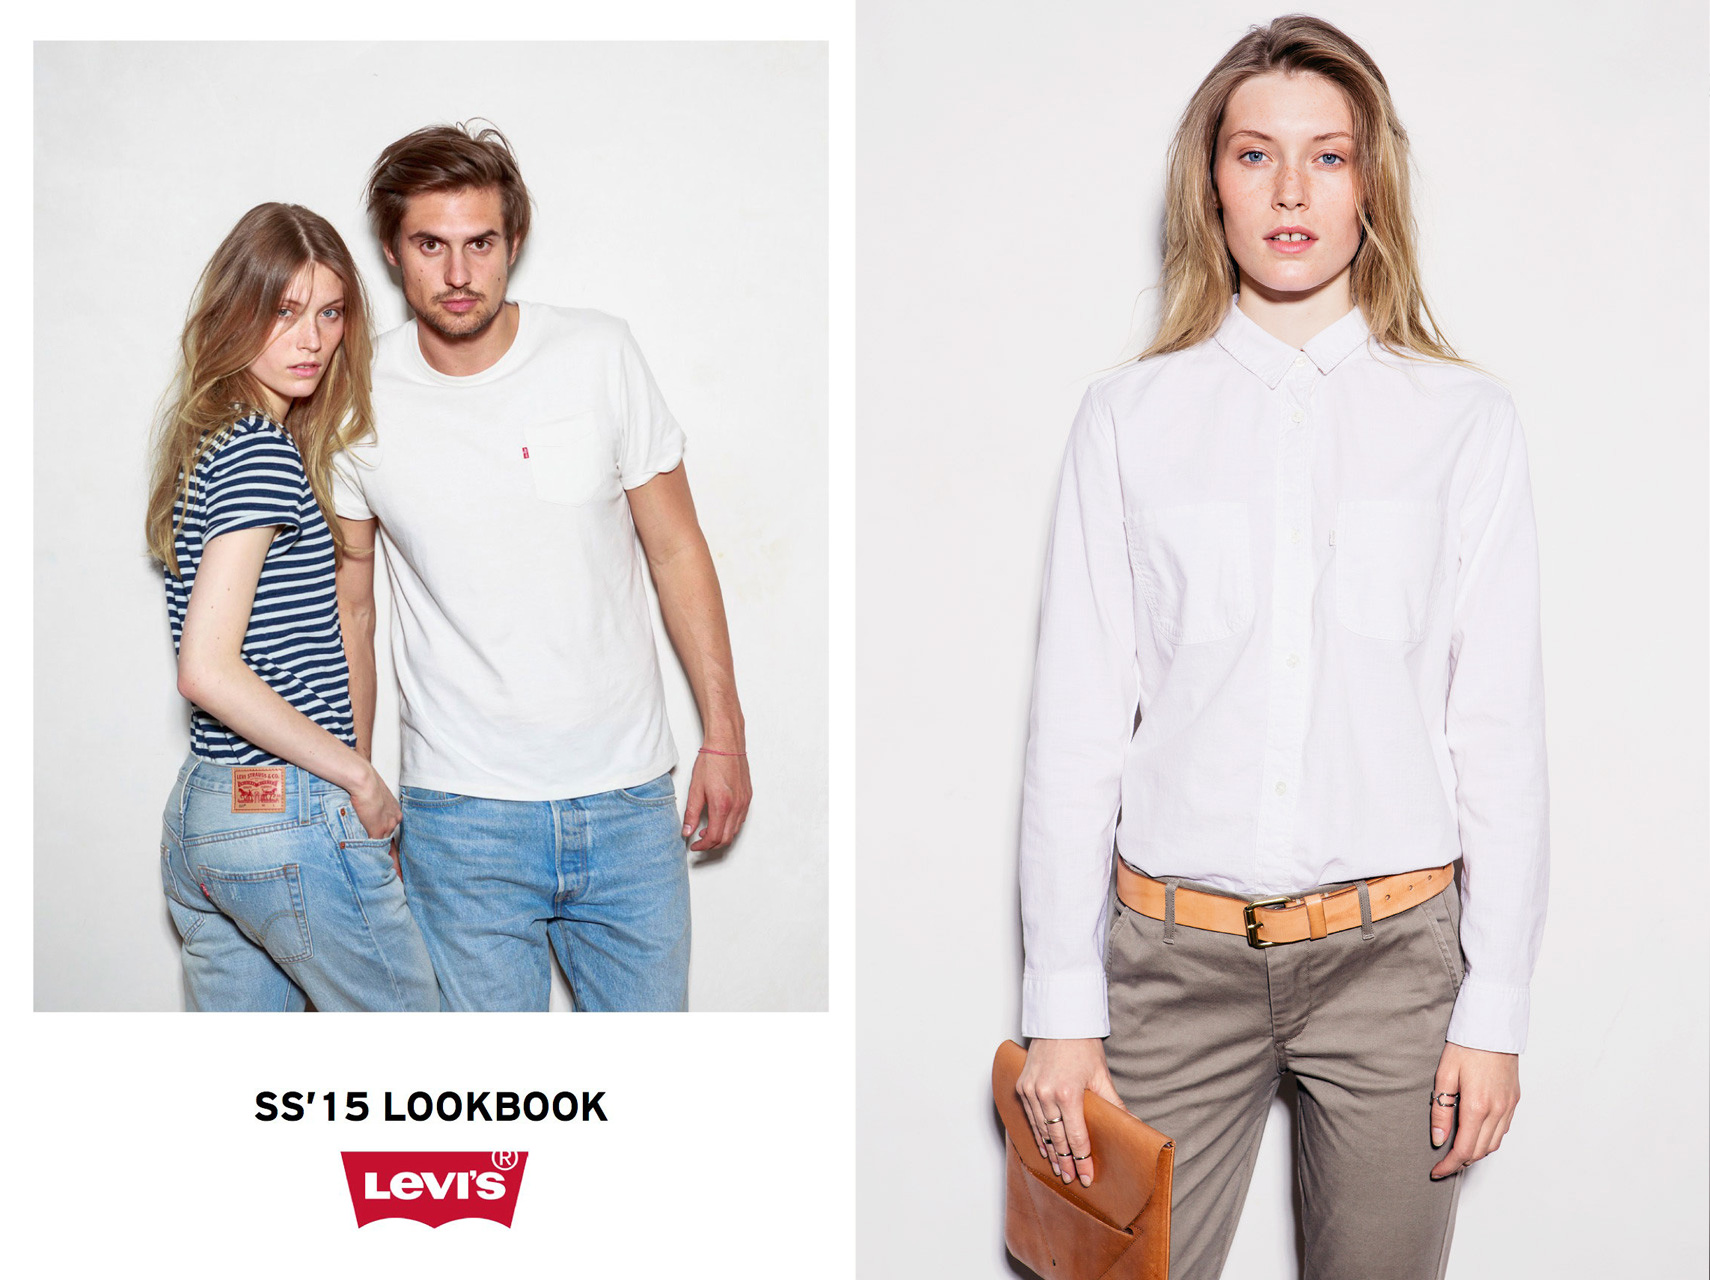 Levis-Lookbook-001.jpg